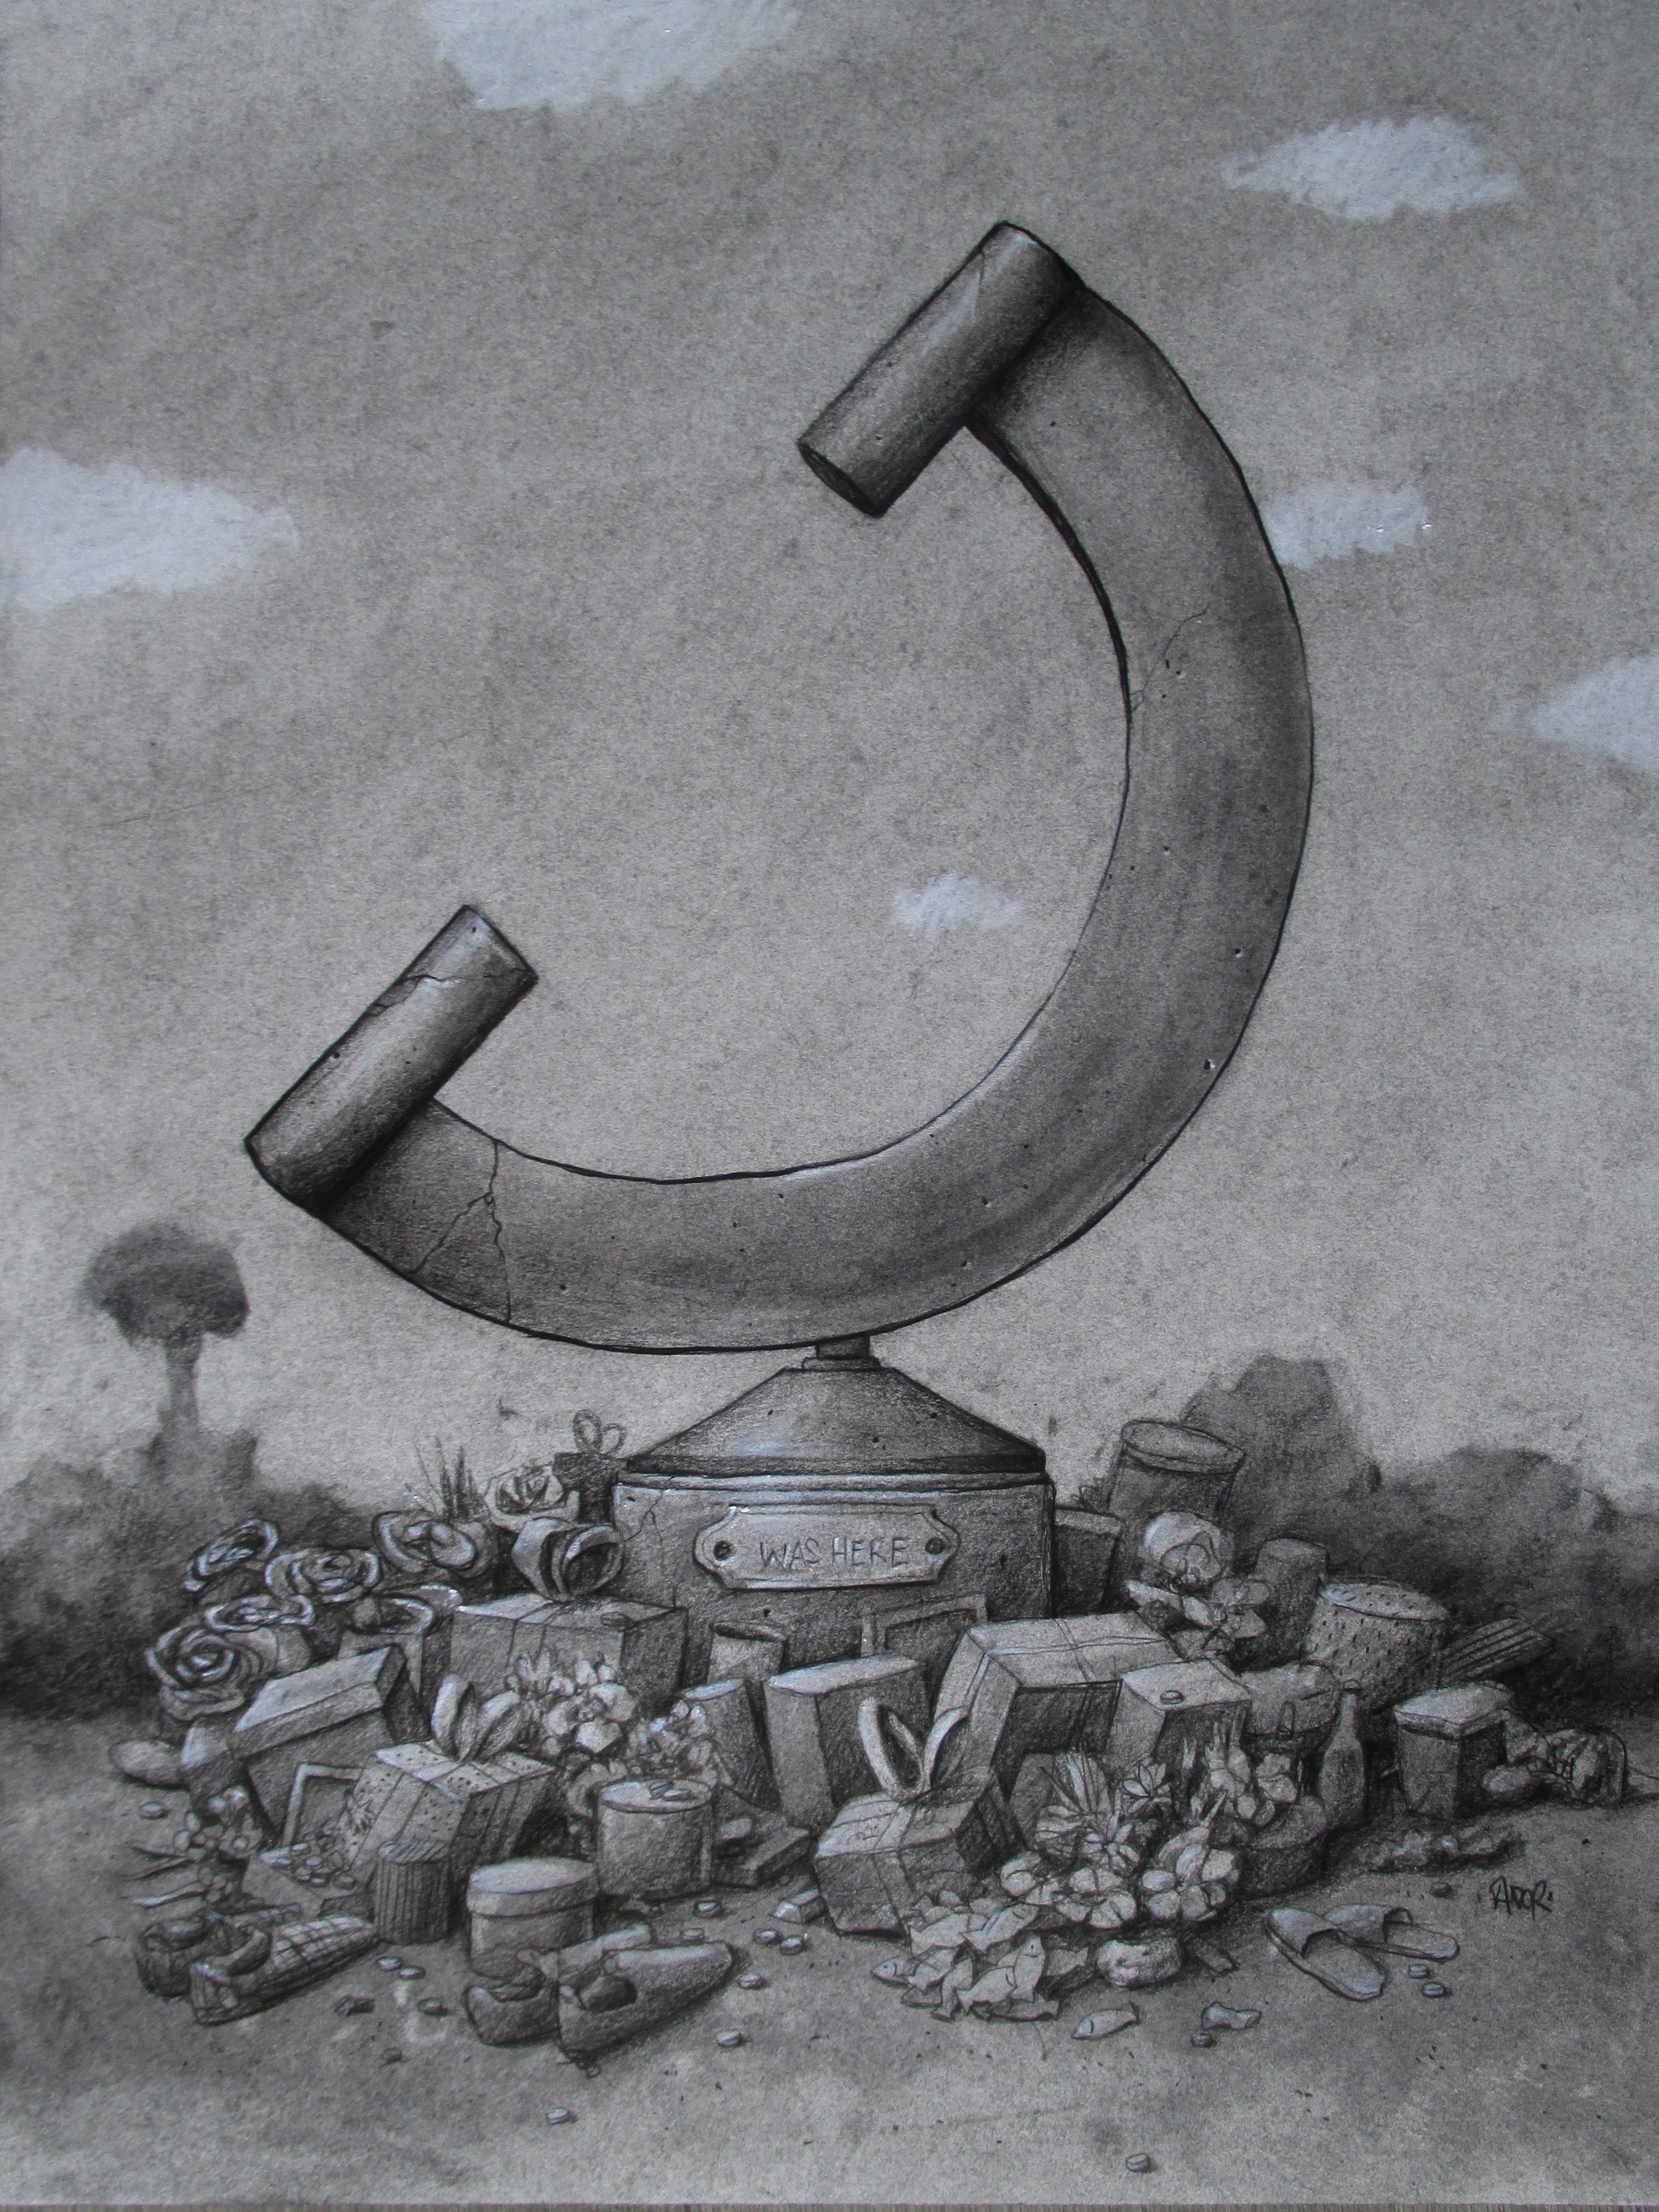 """Was here"", 2014, graphite on paper, 16"" x 12"""